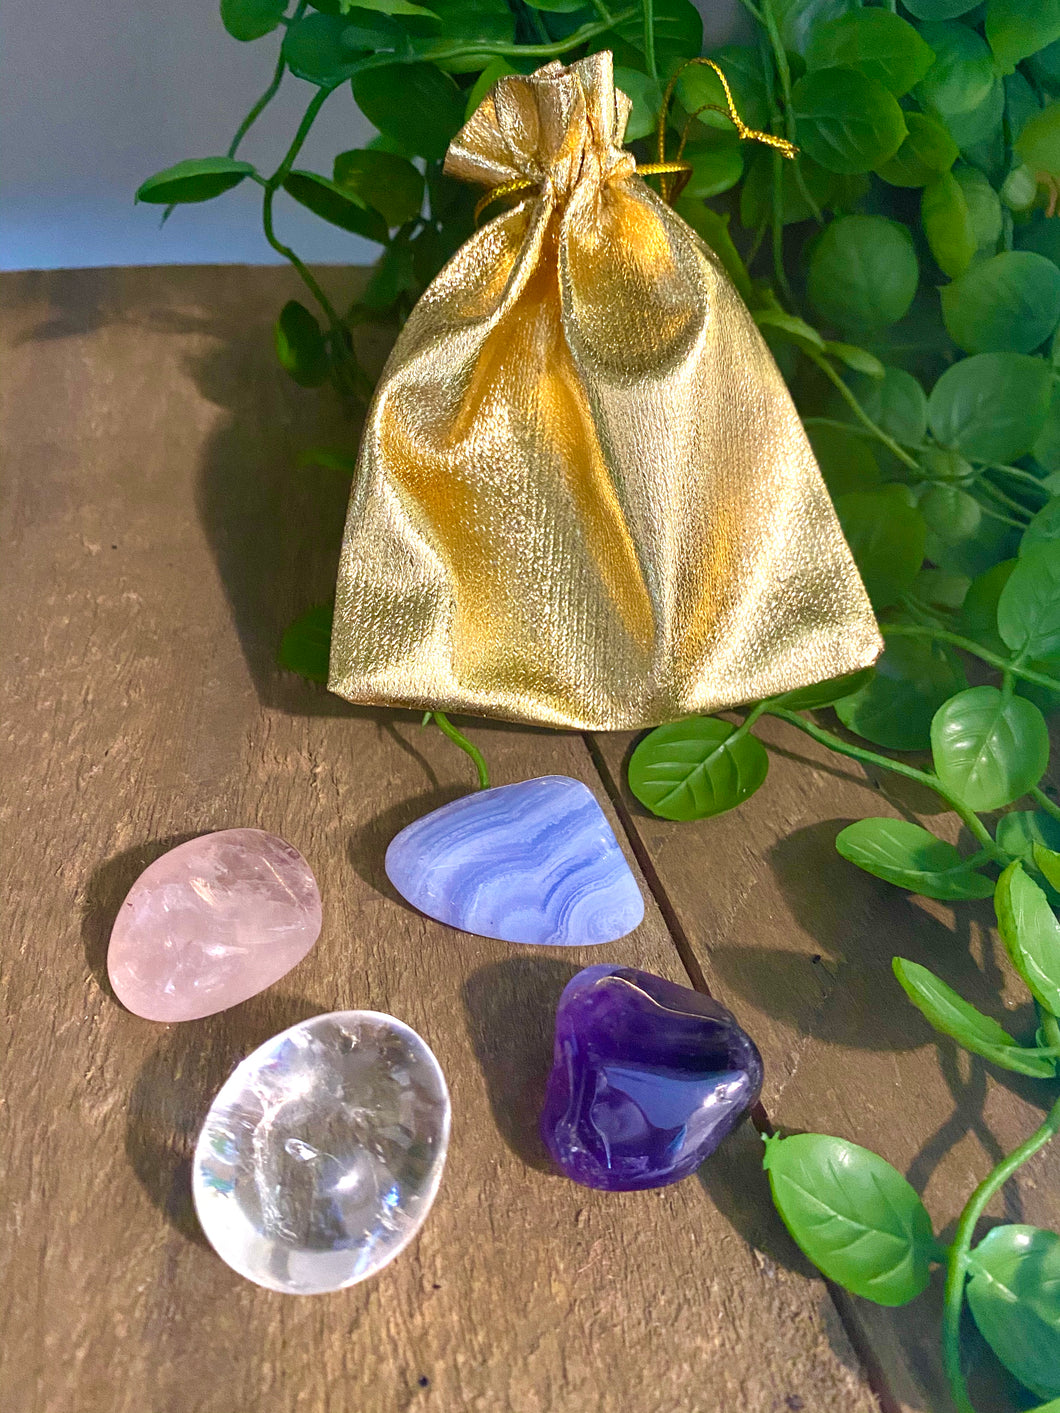 Tumbled stones gift pack - Rose Quartz, Blue Lace Agate, Clear Quartz and Amethyst